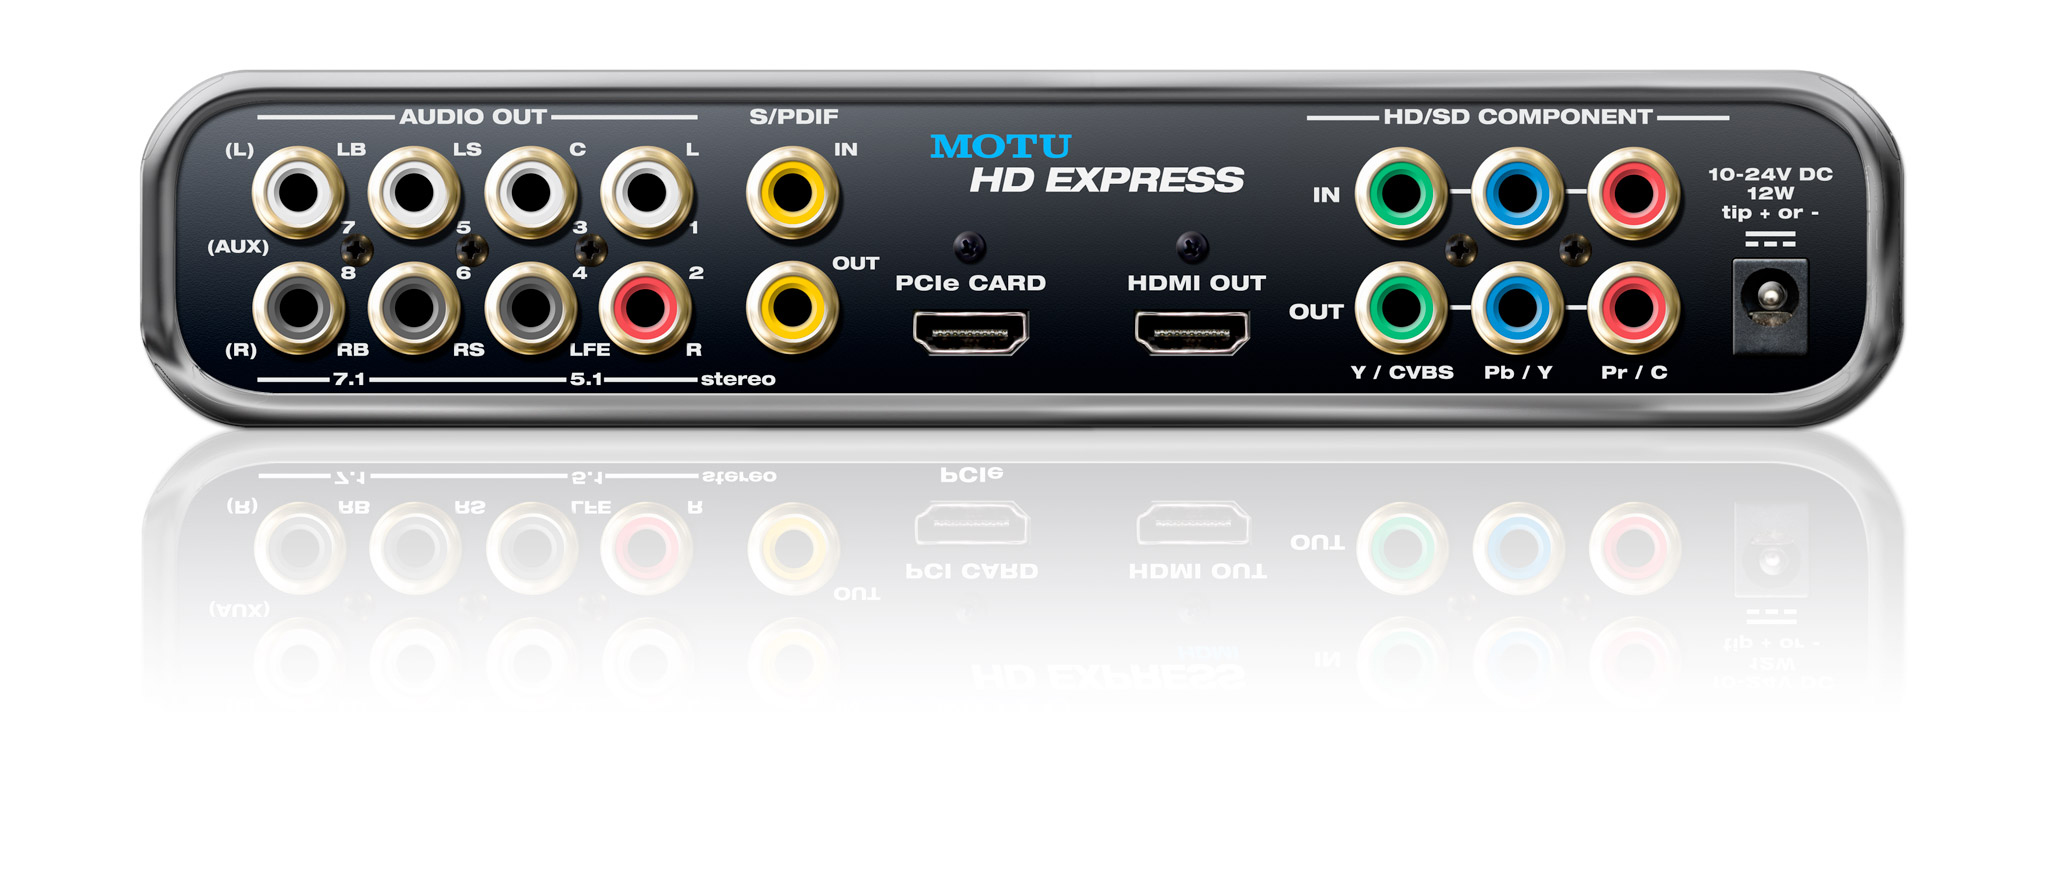 Hd Express Hdmi further Alienware M17x R2 Review in addition 1 additionally Preview Maximus V Gene furthermore Review Hp 620 Notebook 41832 0. on pci card for laptop